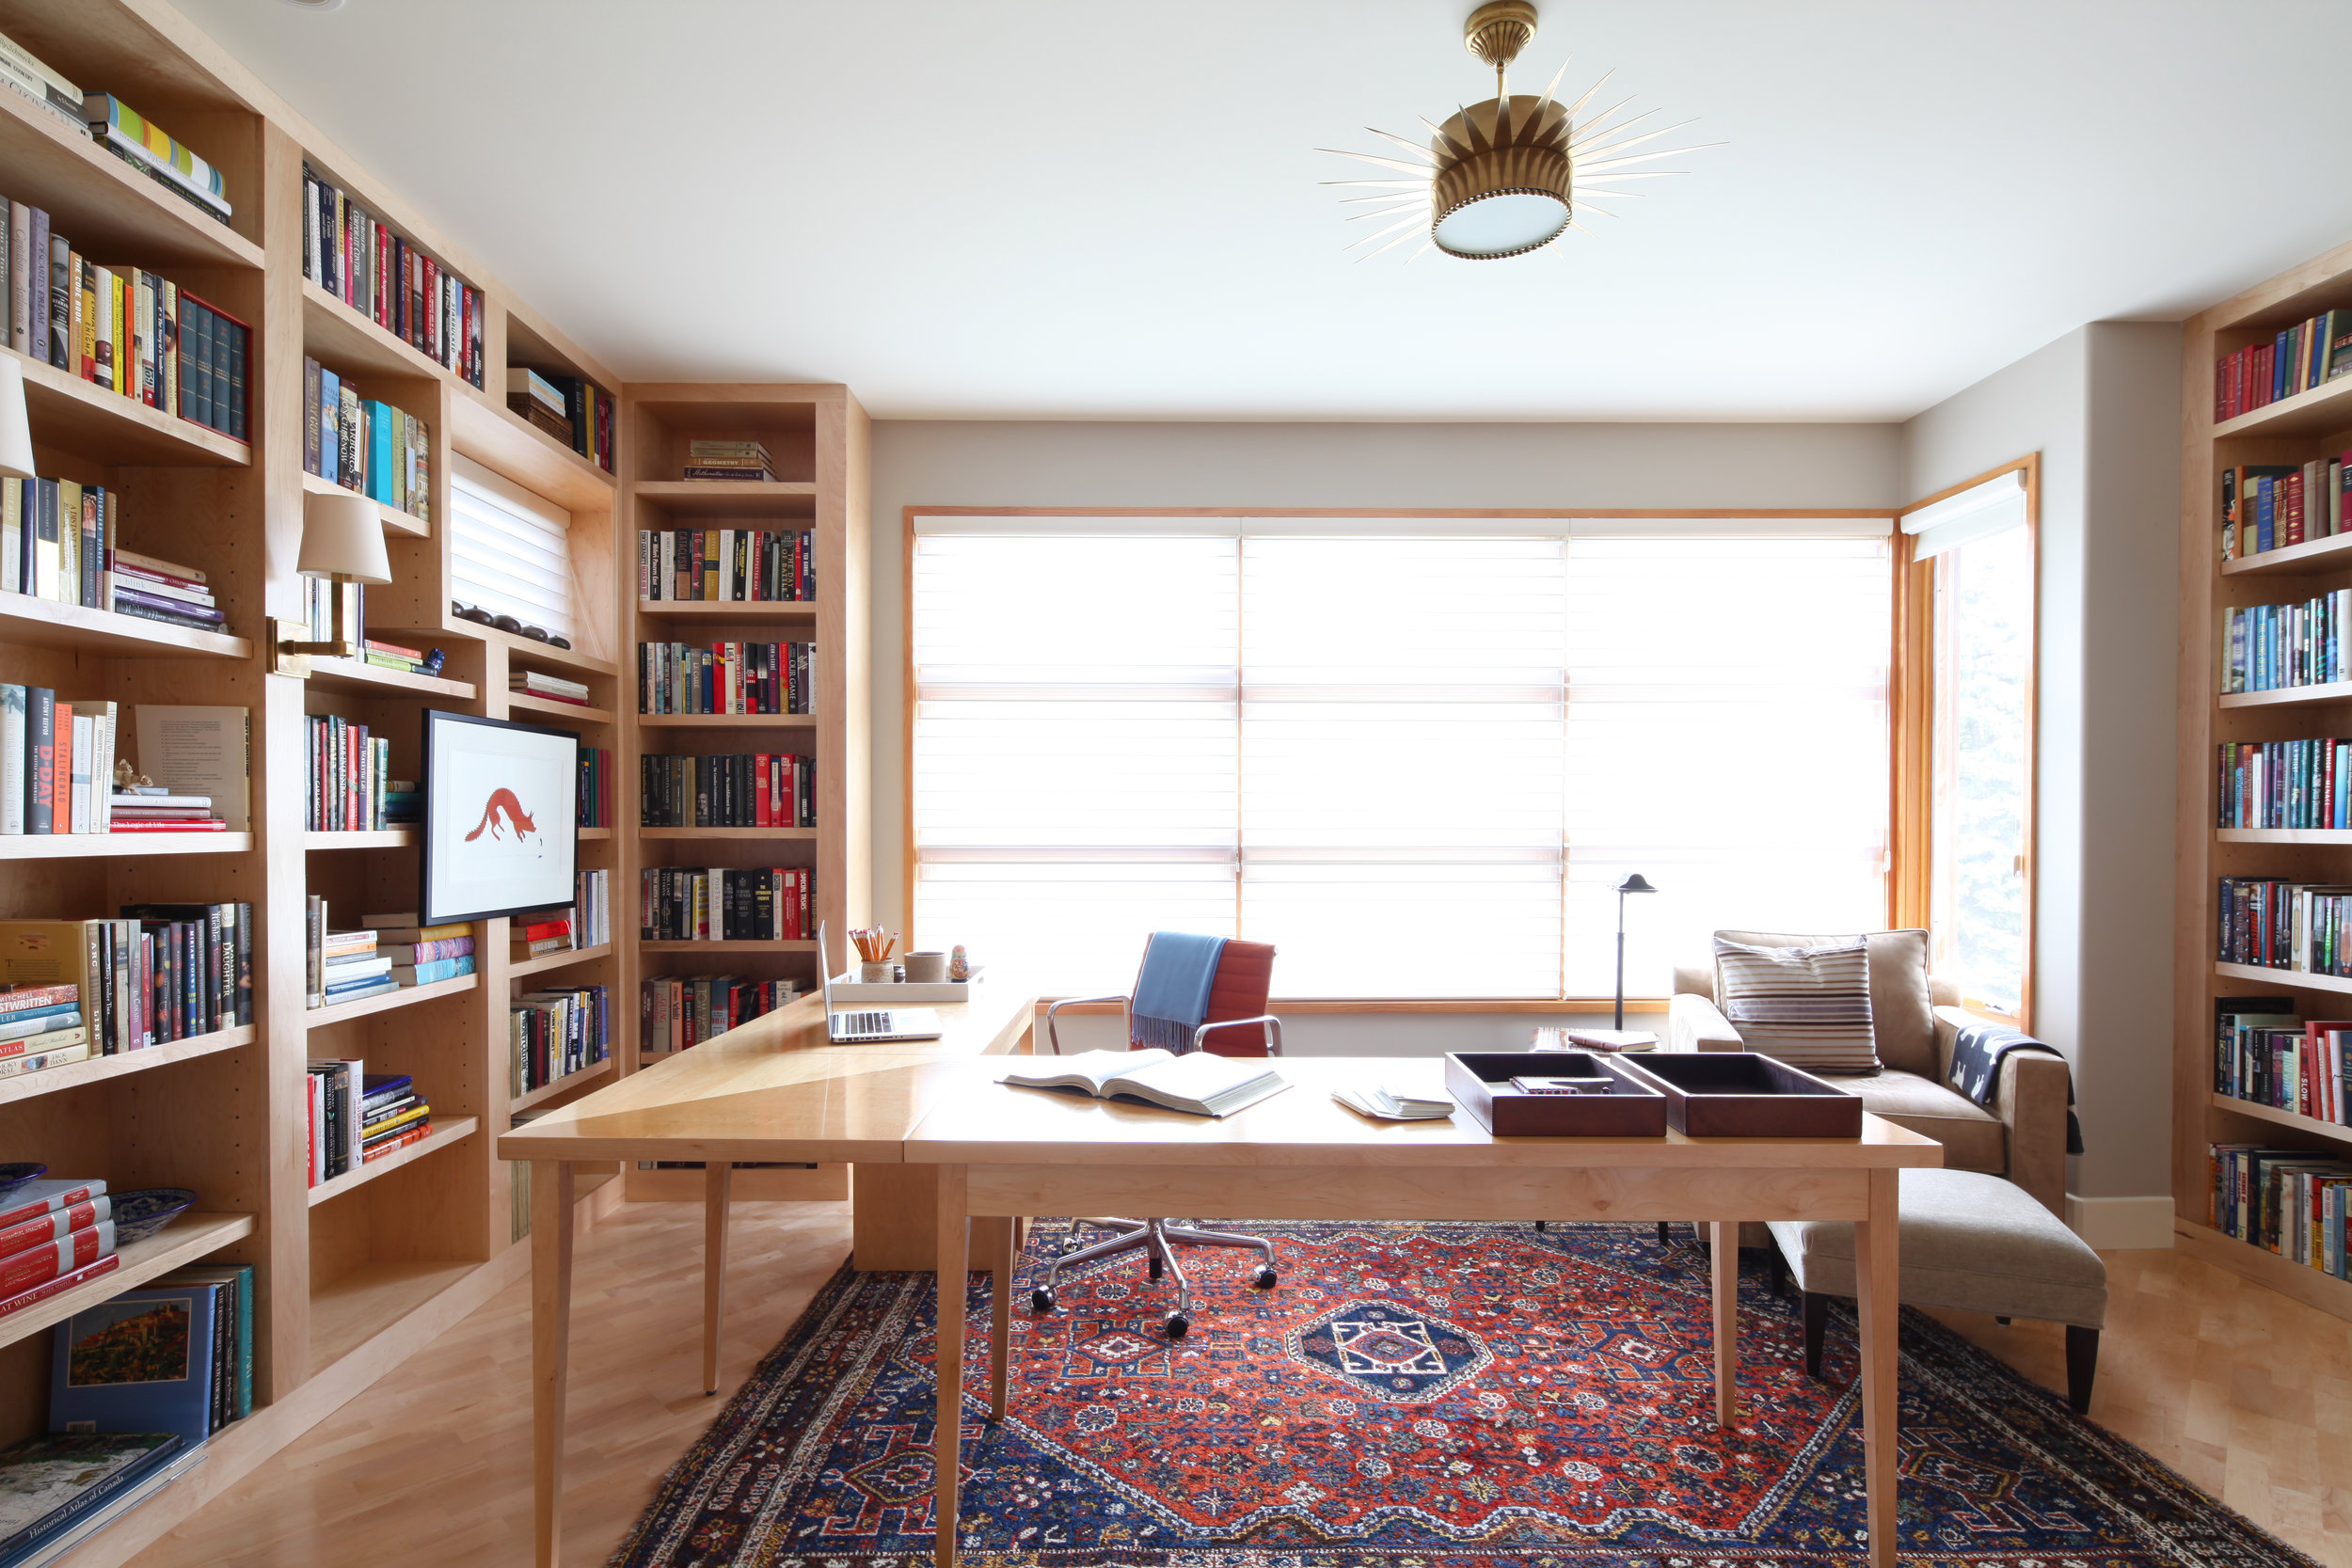 Nyla Free Designs, lakeview,  Top office design details.